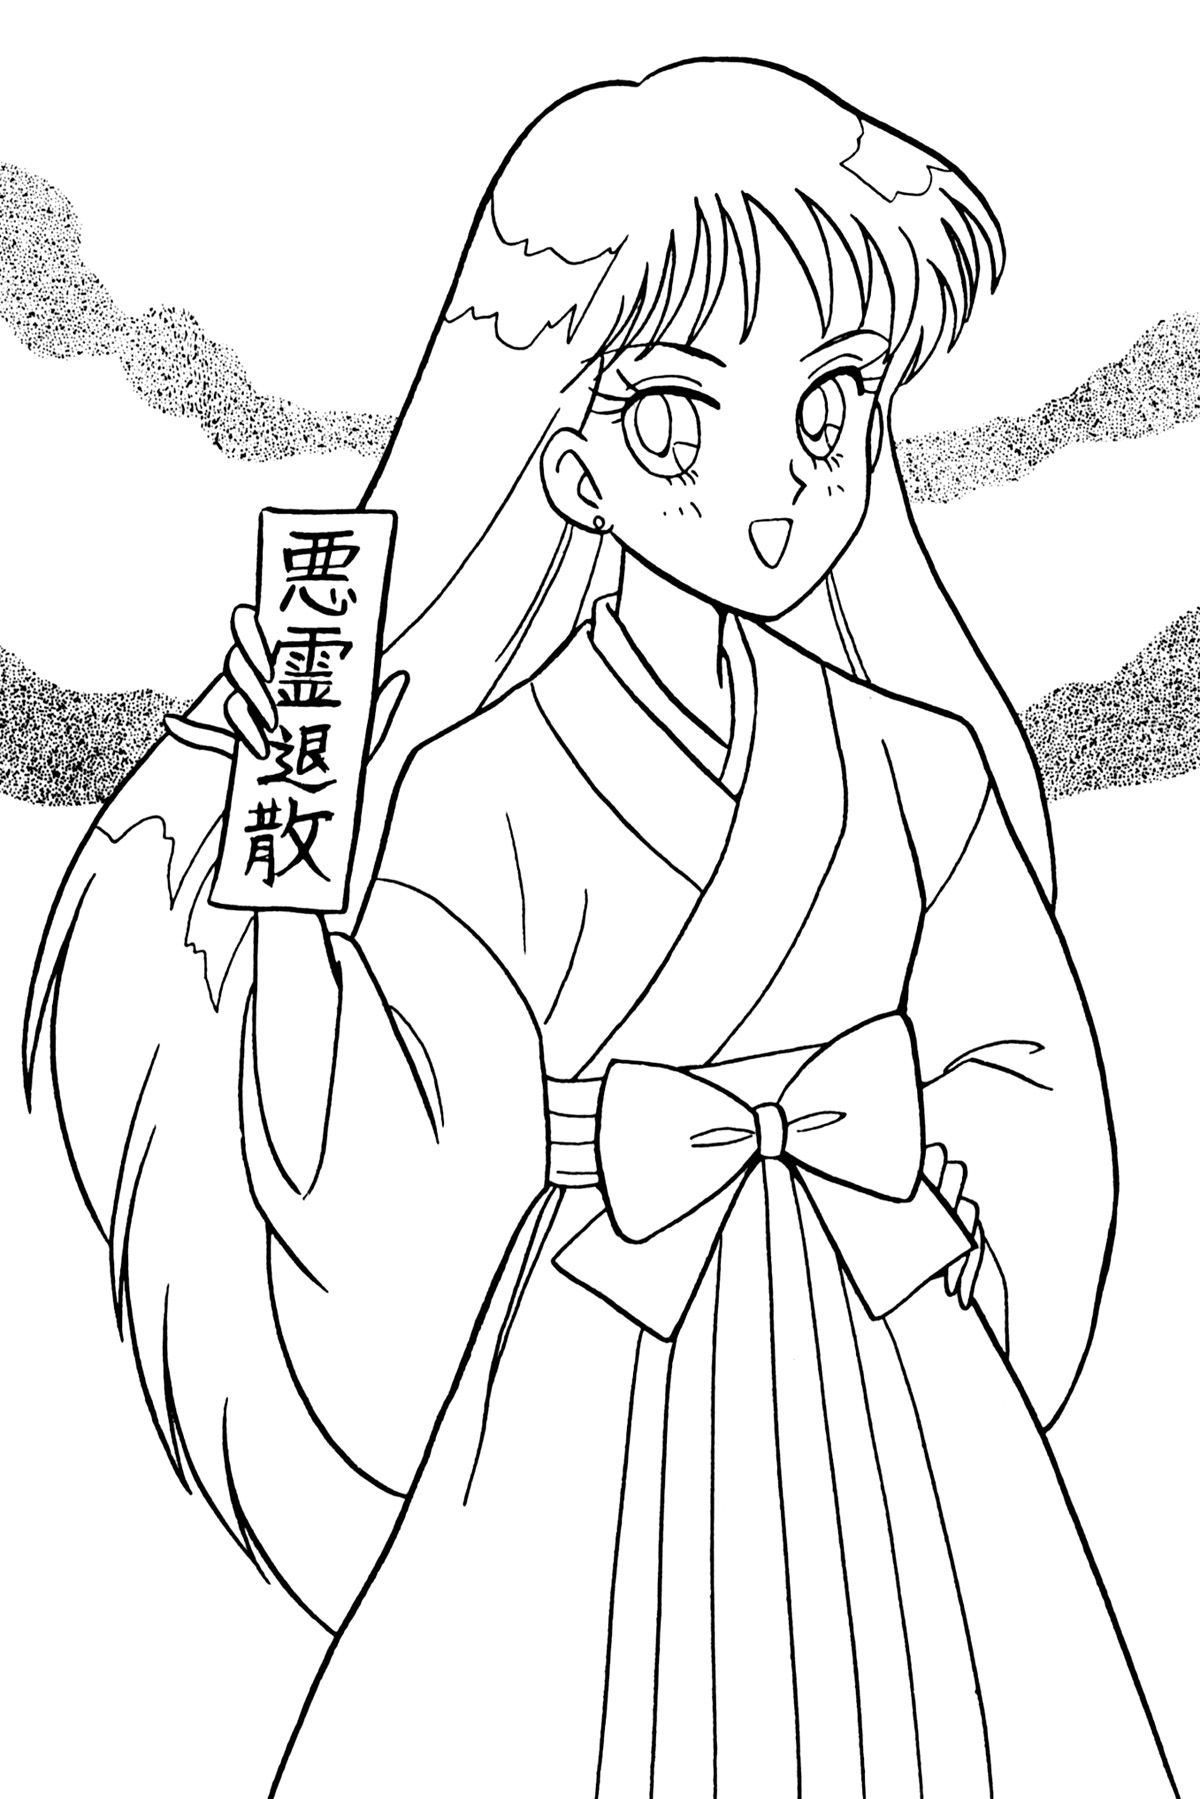 coloring pages sailormars | Pin by Jess Moore on Coloring pages | Sailor moon ...